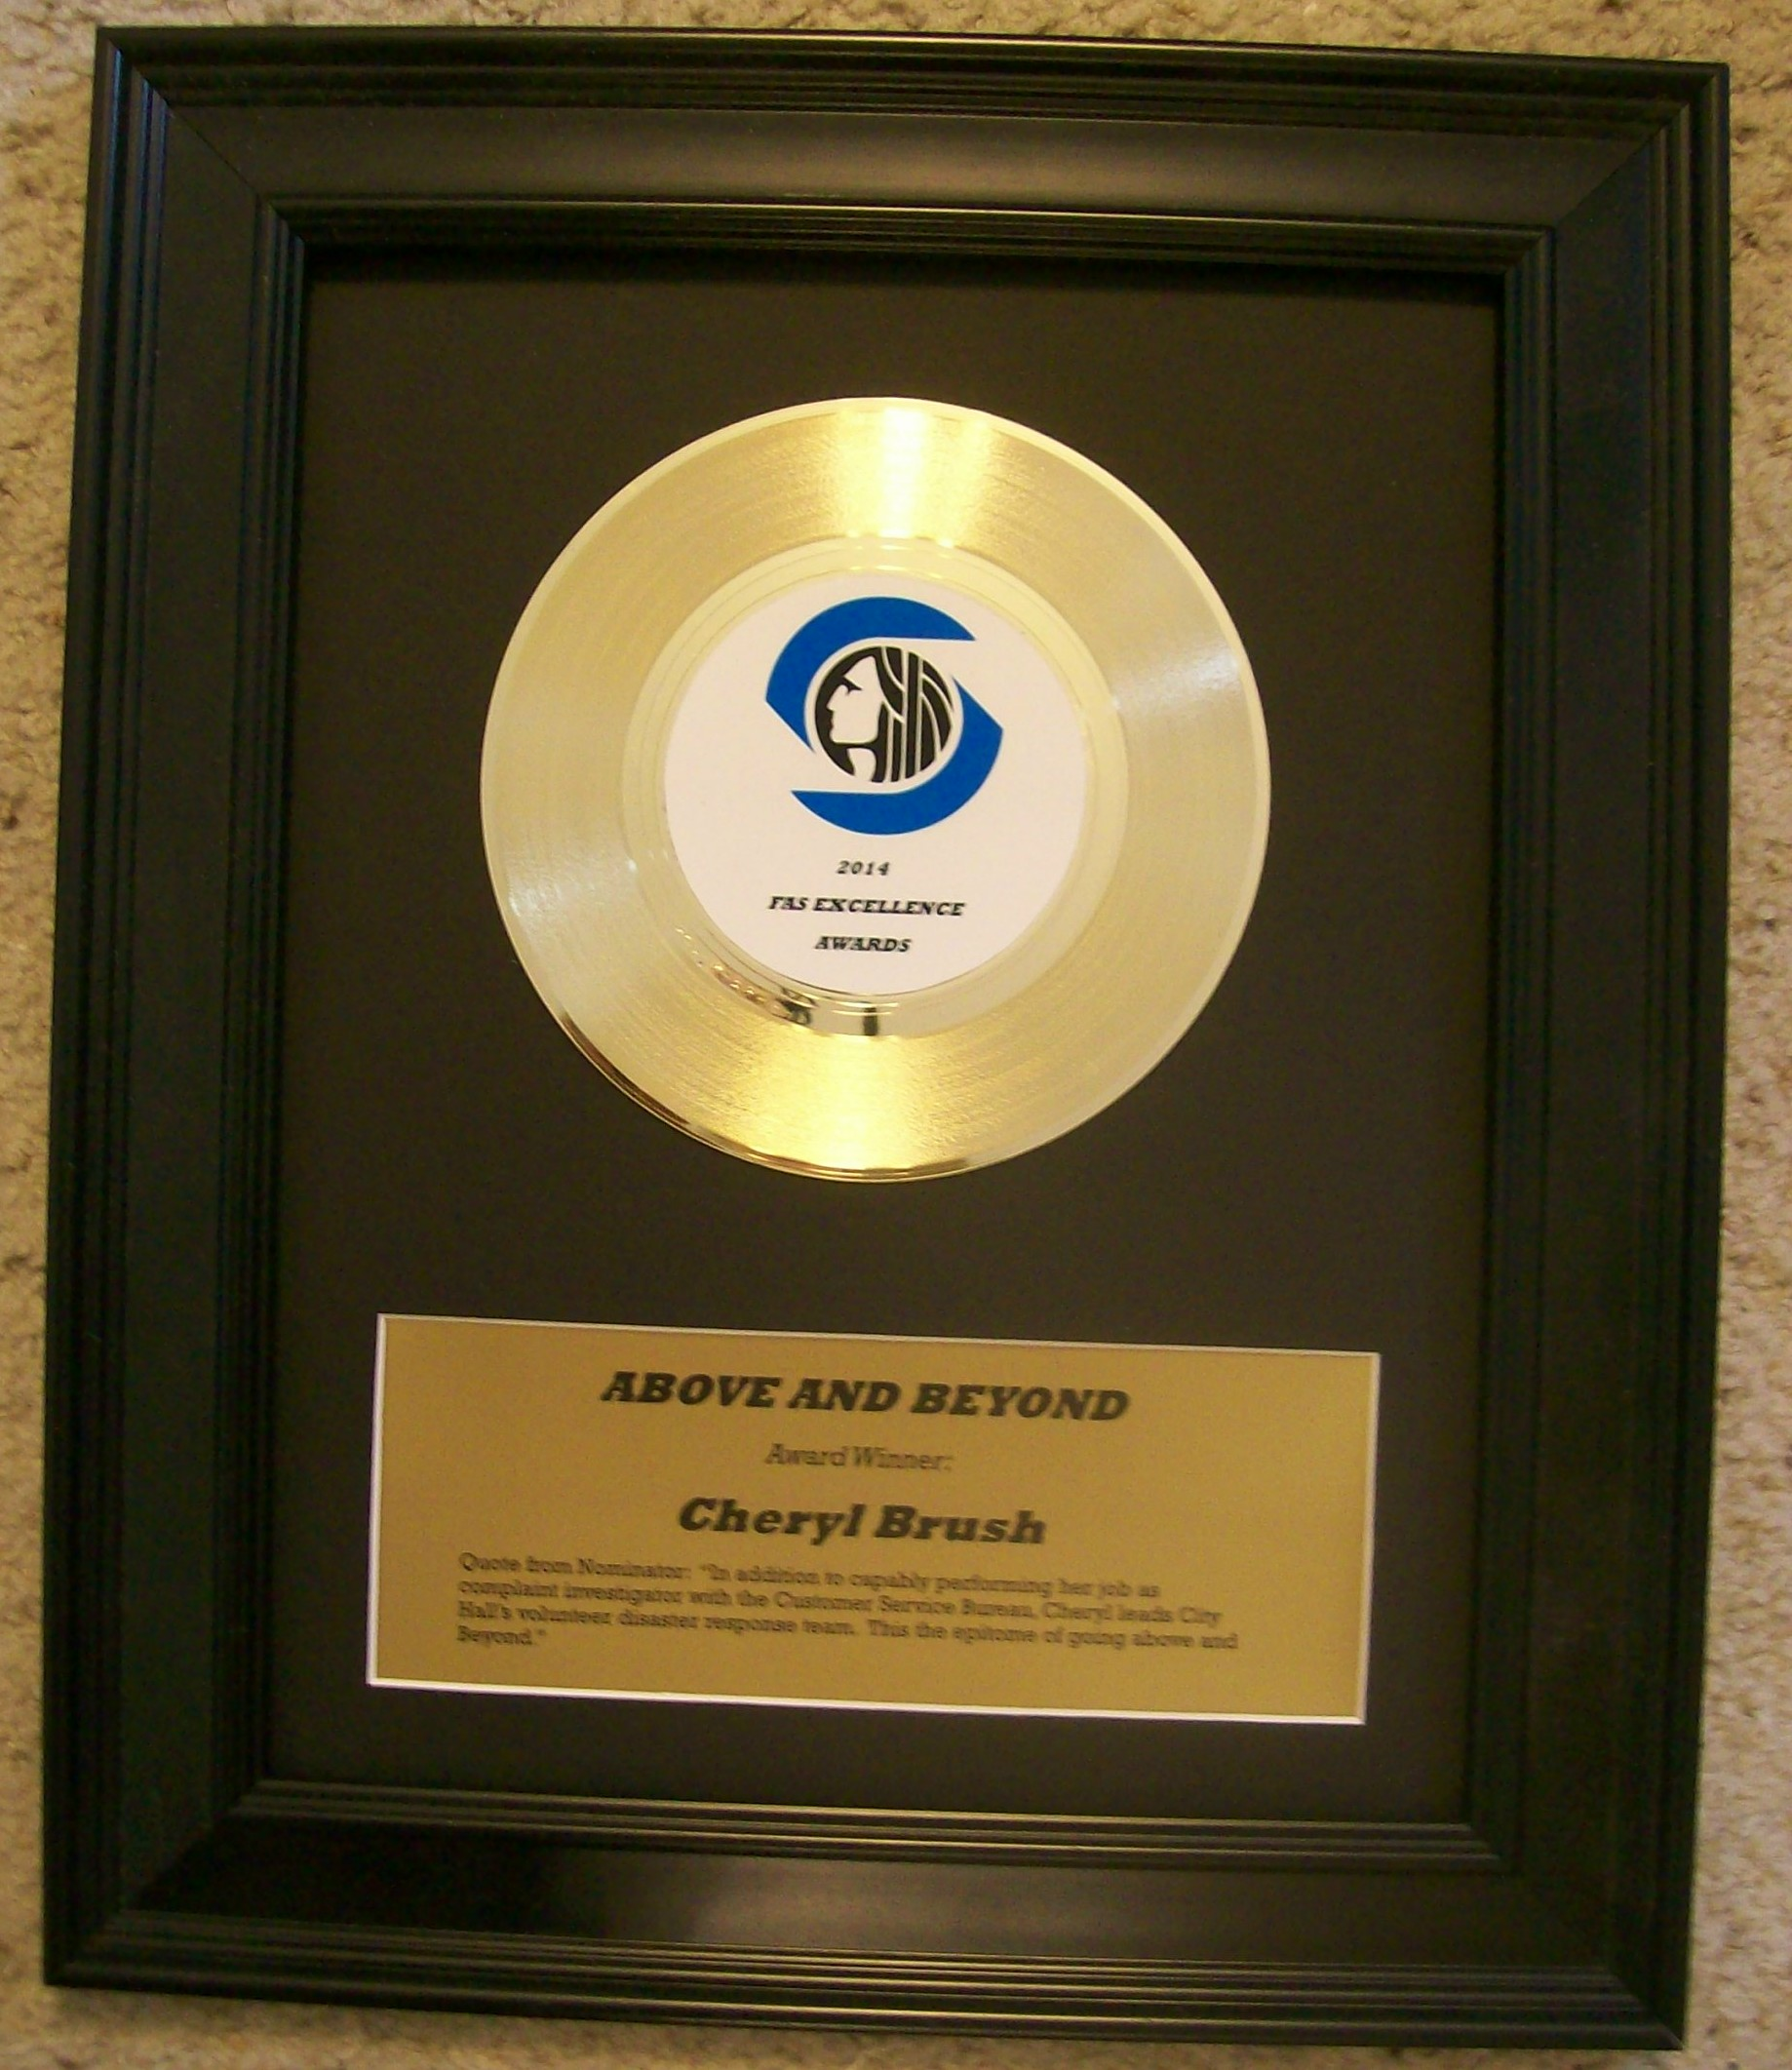 Image for Custom Gold 45rpm Record Award/Trophy